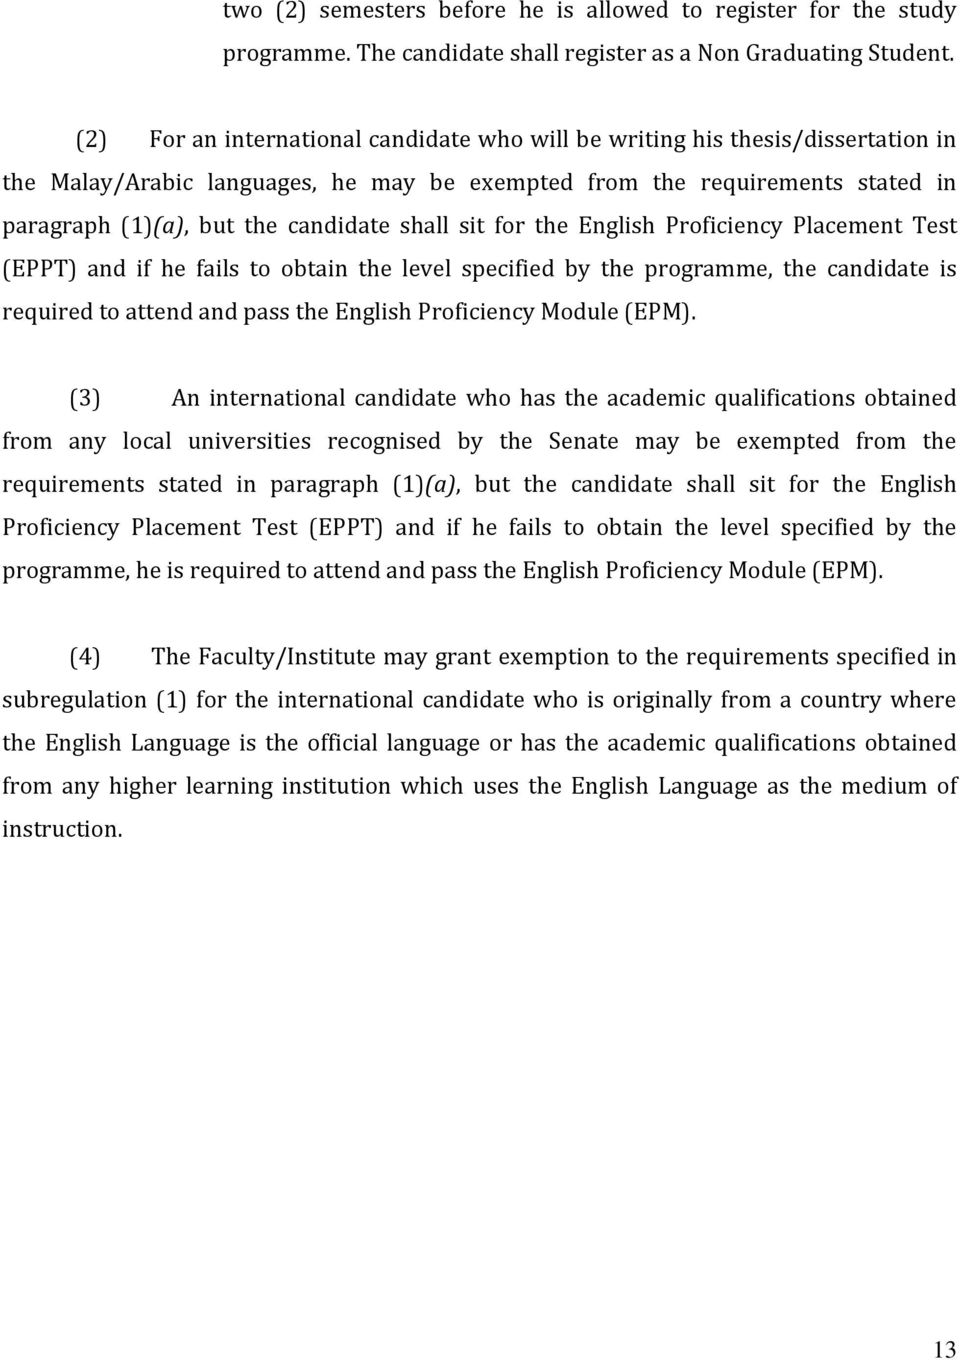 sit for the English Proficiency Placement Test (EPPT) and if he fails to obtain the level specified by the programme, the candidate is required to attend and pass the English Proficiency Module (EPM).